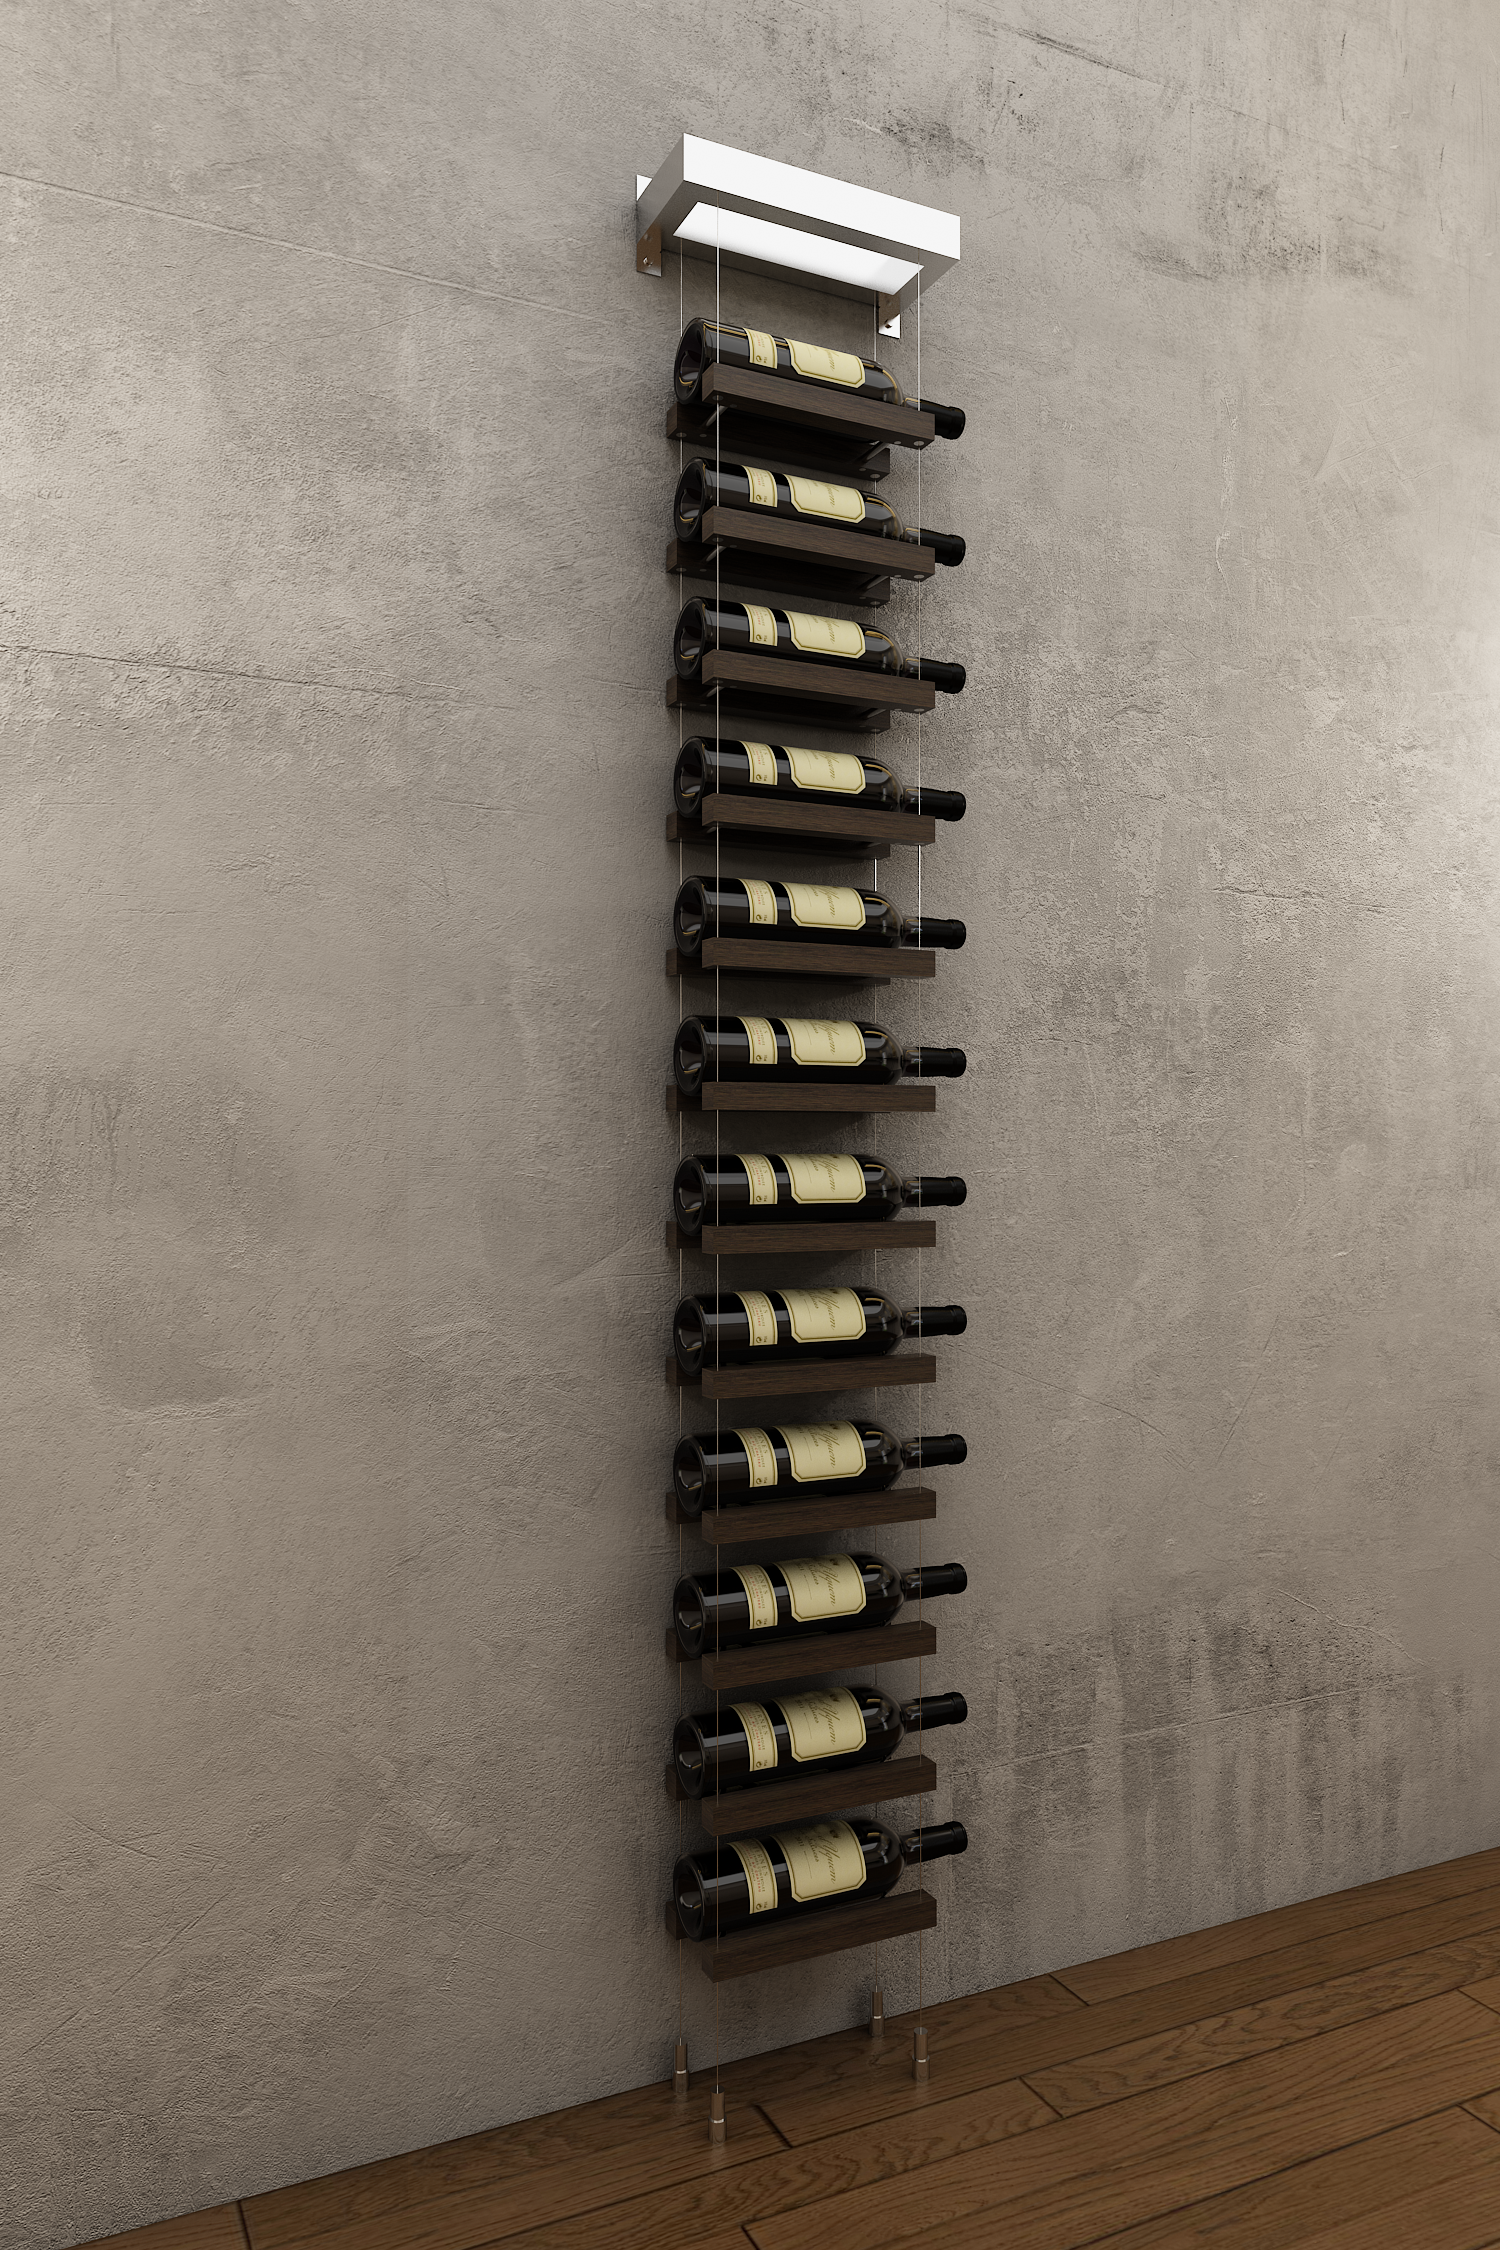 The New Wm12 Cr Wnut Is A 12 Bottles Wall Mounted Wine Rack And Is